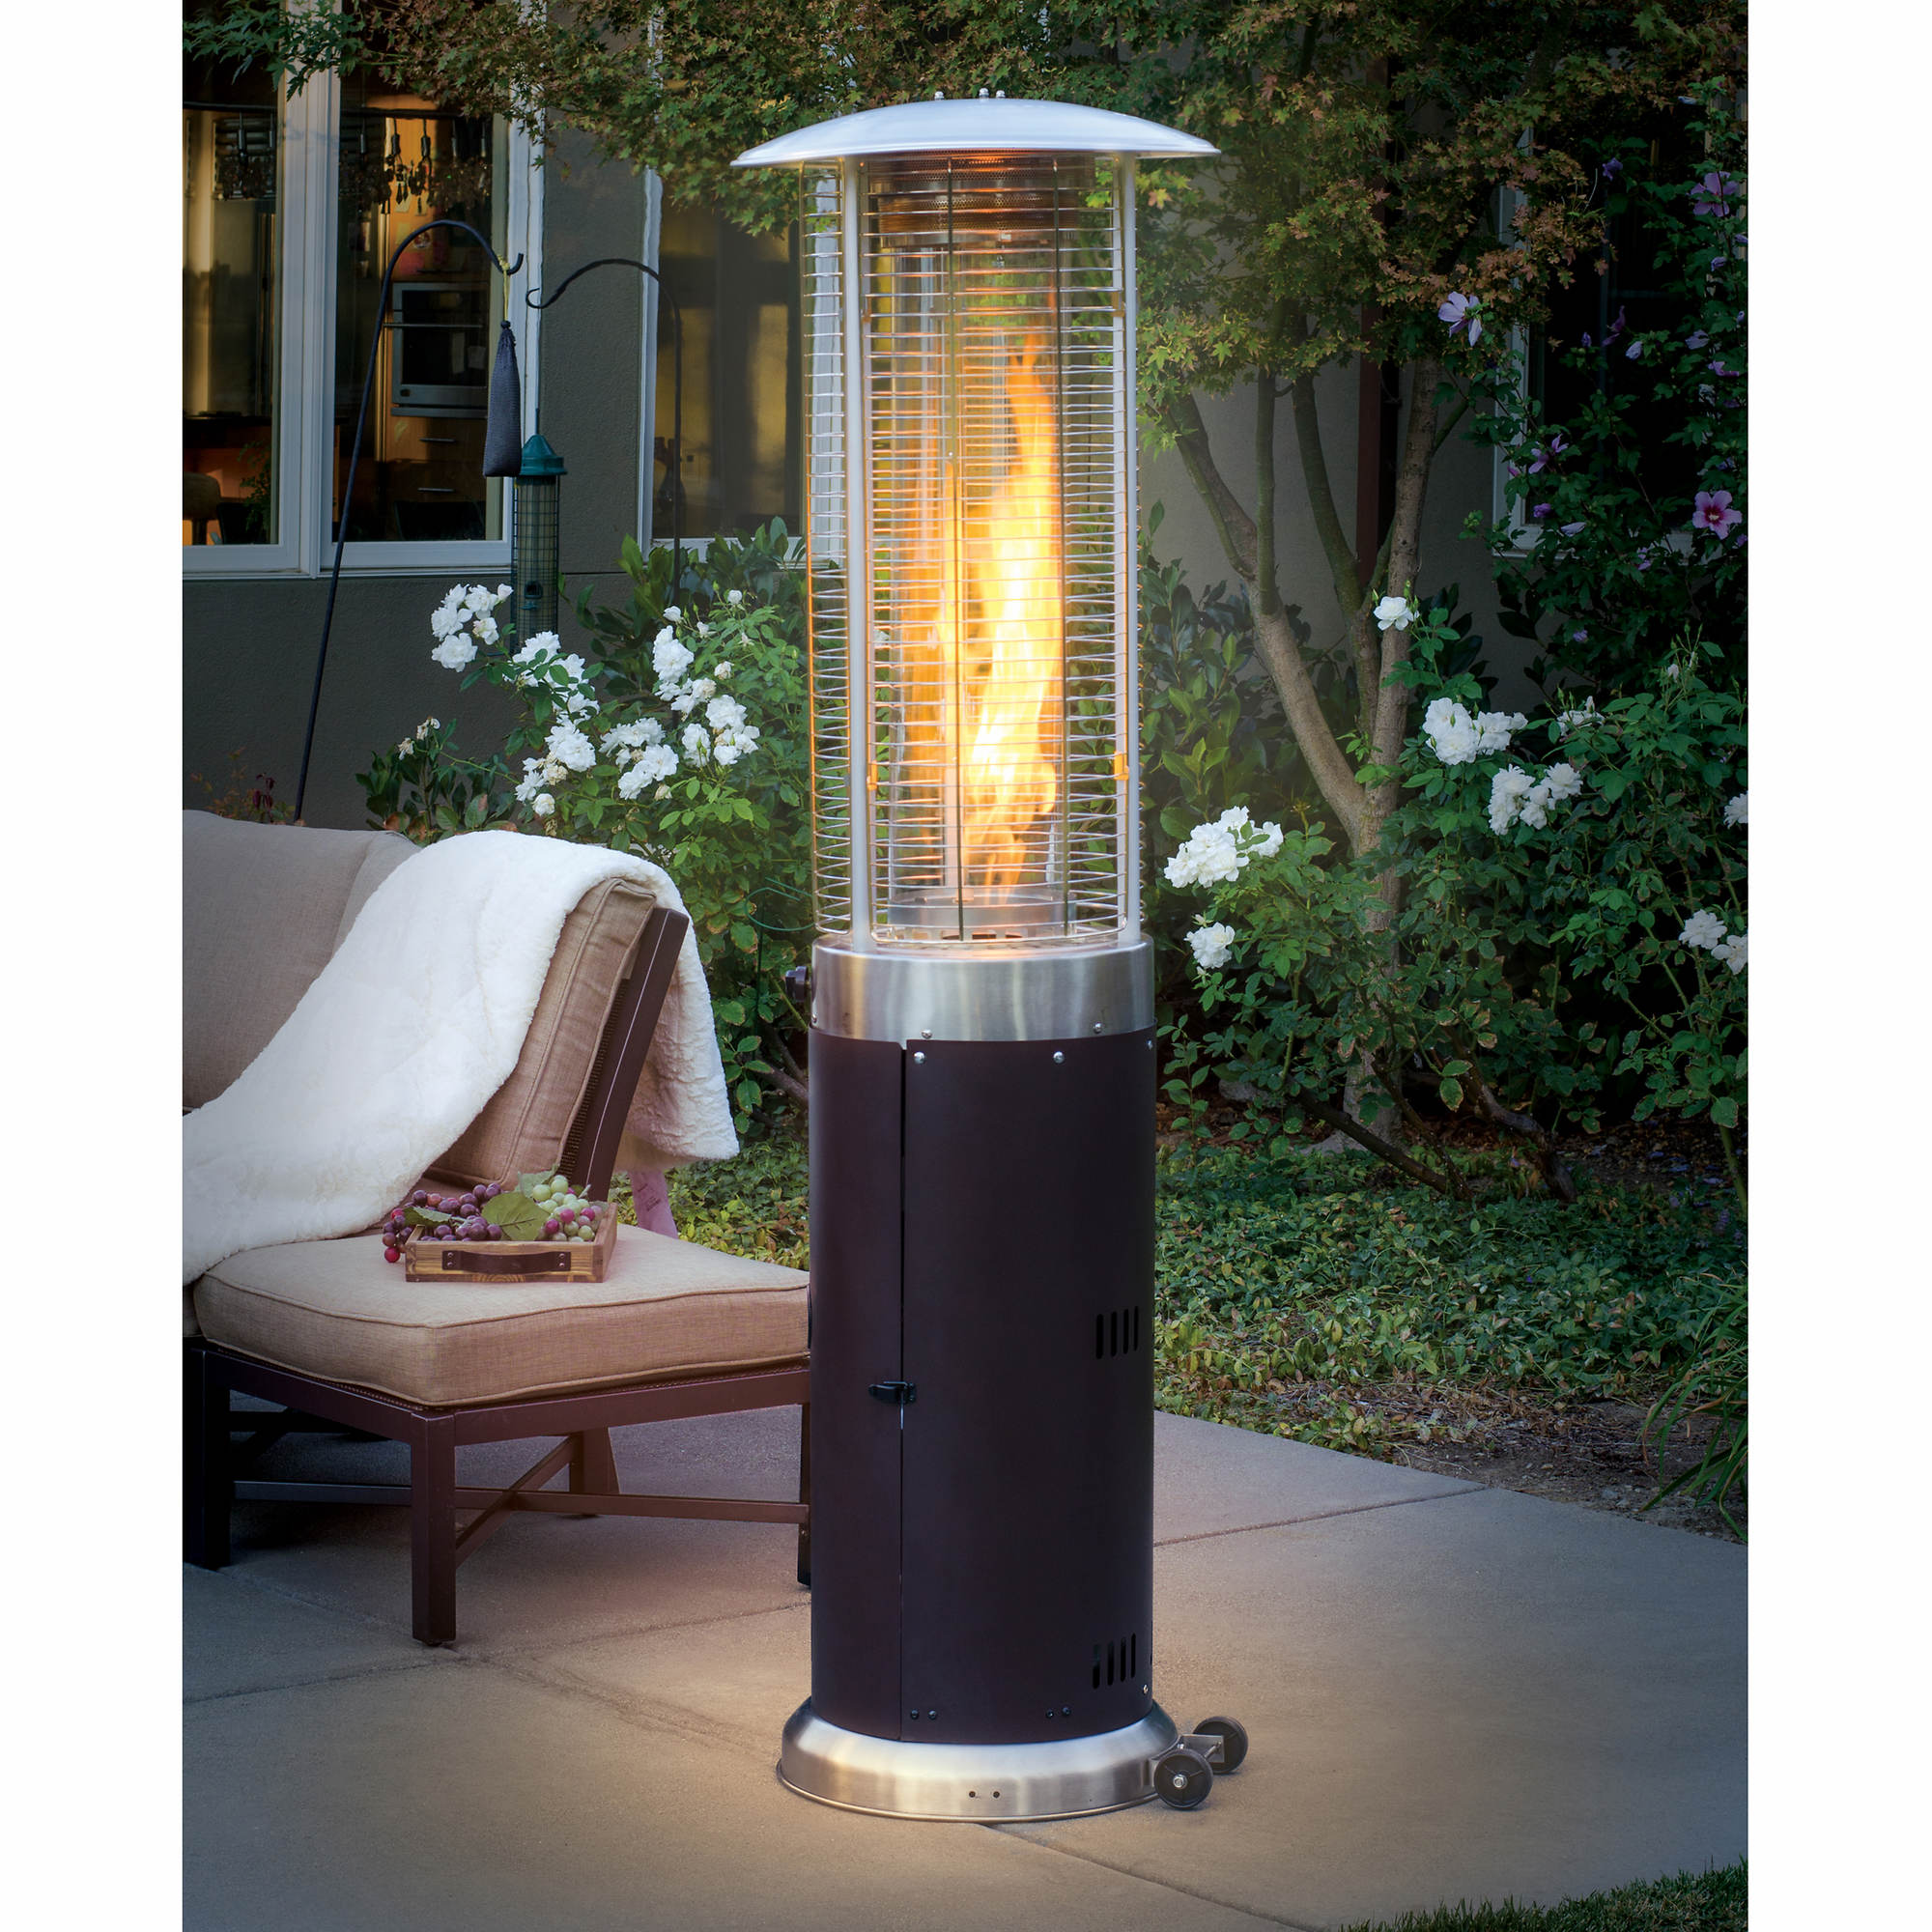 Bond Two-Tone 46000-BTU 6' Induction Patio Heater